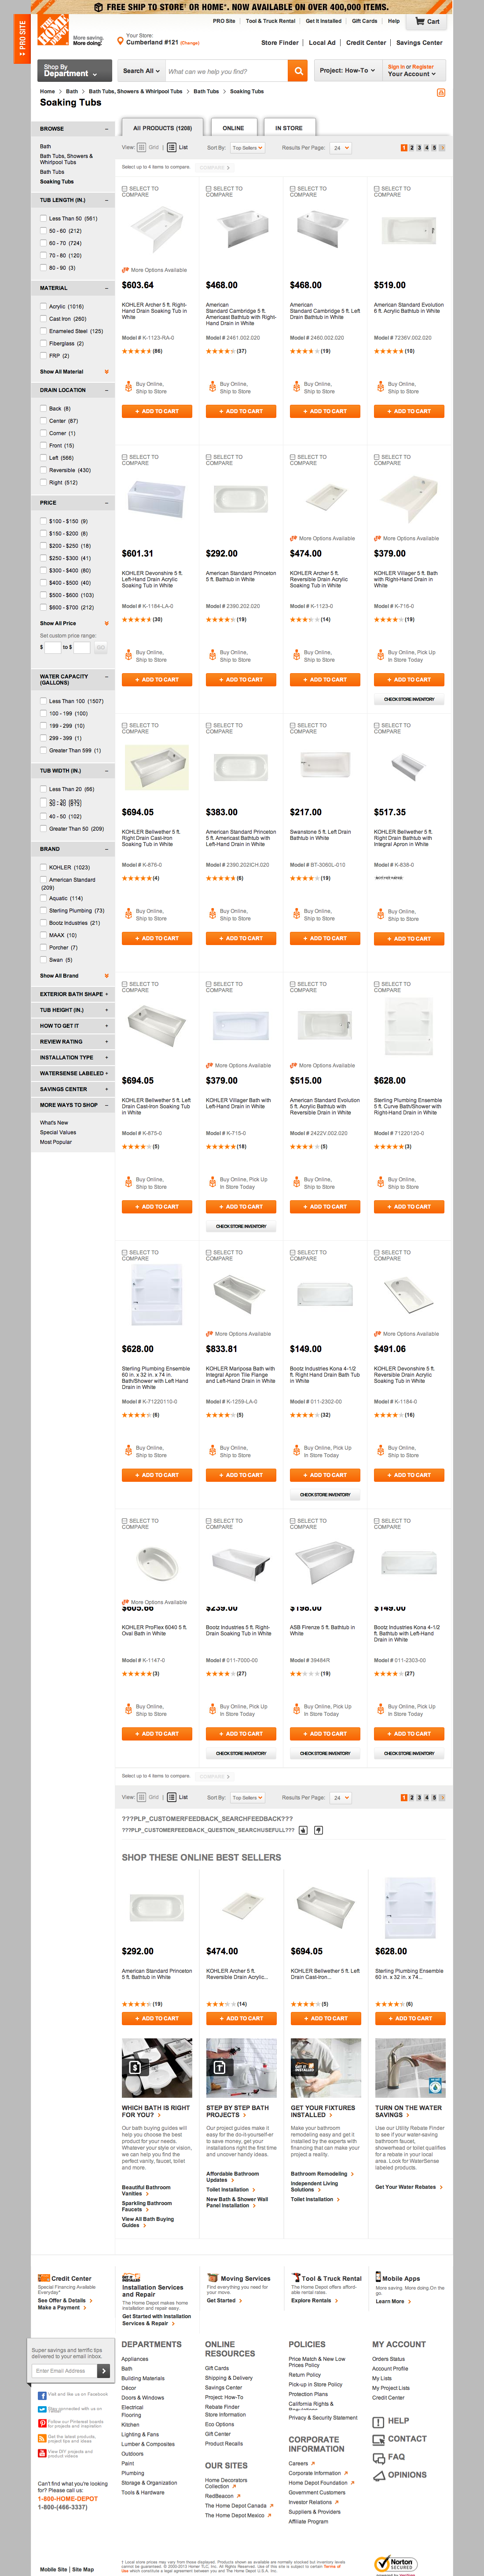 Home depot product list bing images for F home depot